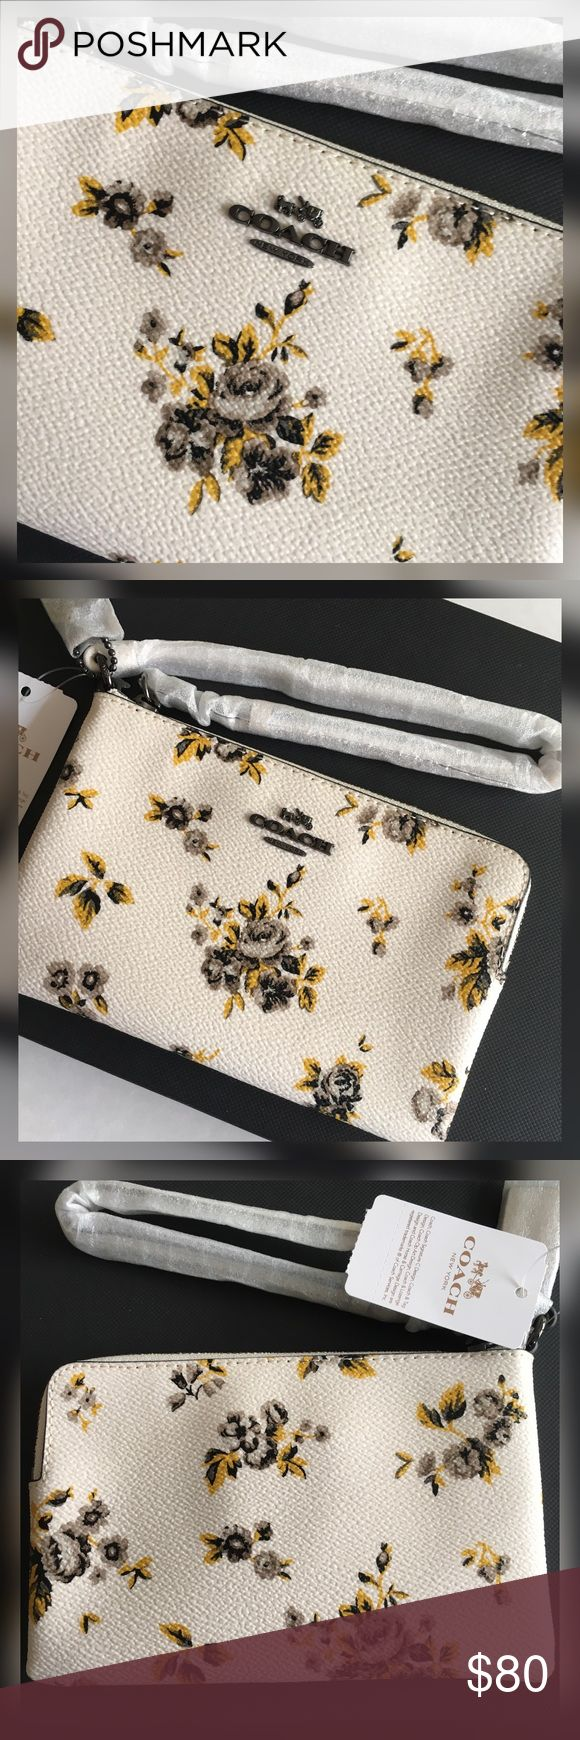 """Coach Wristlet Perfectly sized for cards, cash and phone, this petite canvas wristlet in a vintage-inspired prairie floral print can be worn on the wrist or clipped inside of a larger bag.     Two credit card slots Zip-top closure, fabric lining Strap with clip to form a wrist strap or attach to the inside of a bag 6 1/4"""" (L) x 4"""" (H) Fits an iPhone or Android Coach Bags Clutches & Wristlets"""